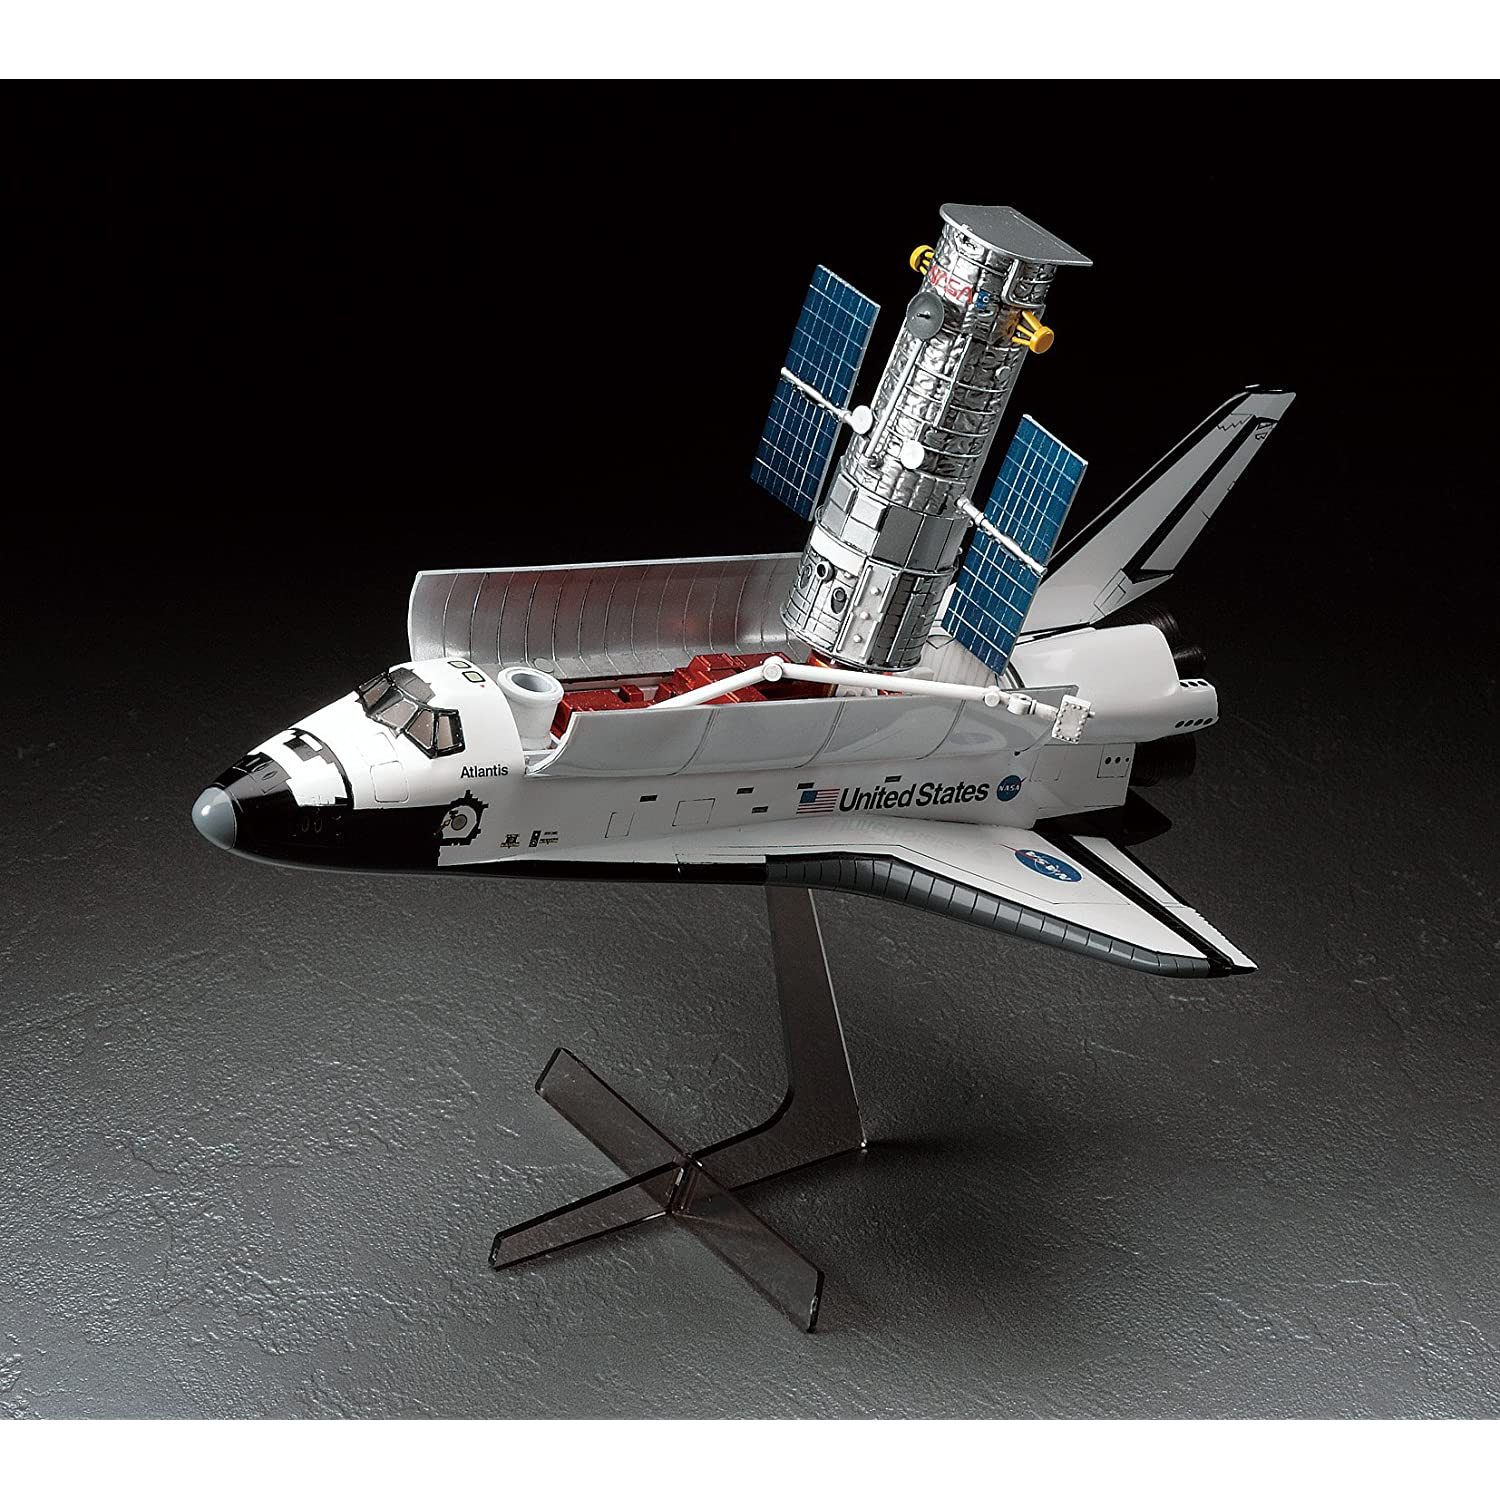 space shuttle hubble - photo #19